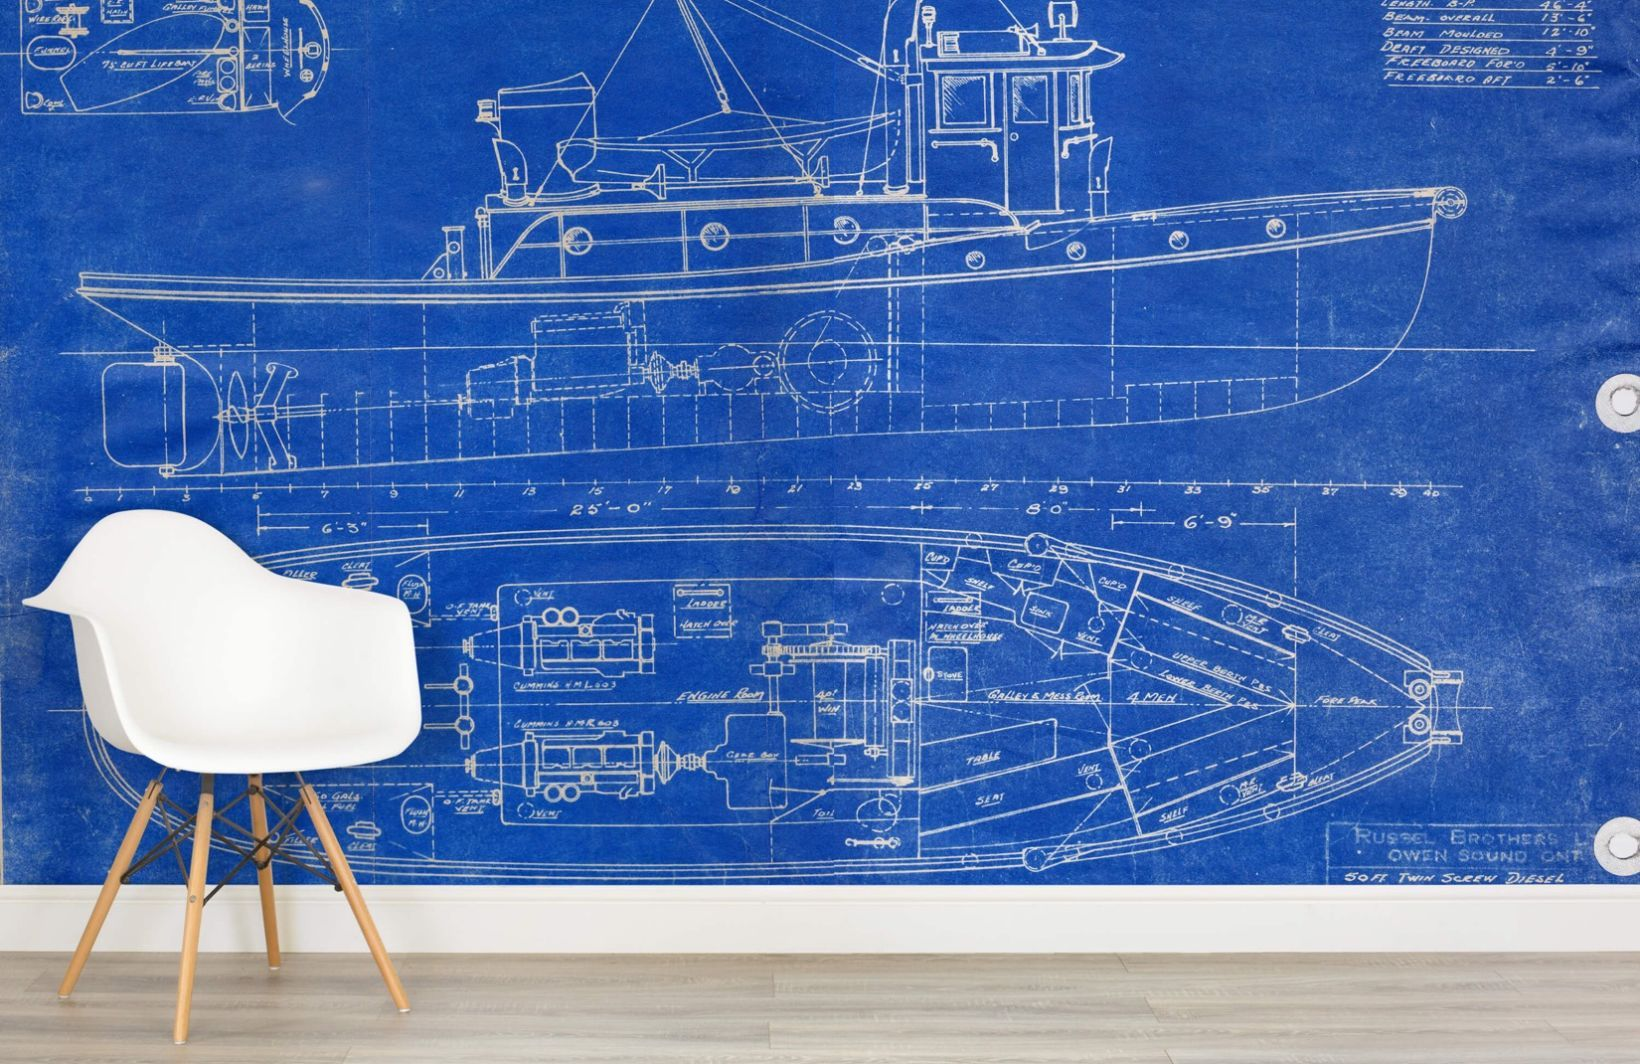 Blueprint boat wallpaper wall mural muralswallpaper retro blueprint boat wallpaper wall mural muralswallpaper malvernweather Gallery